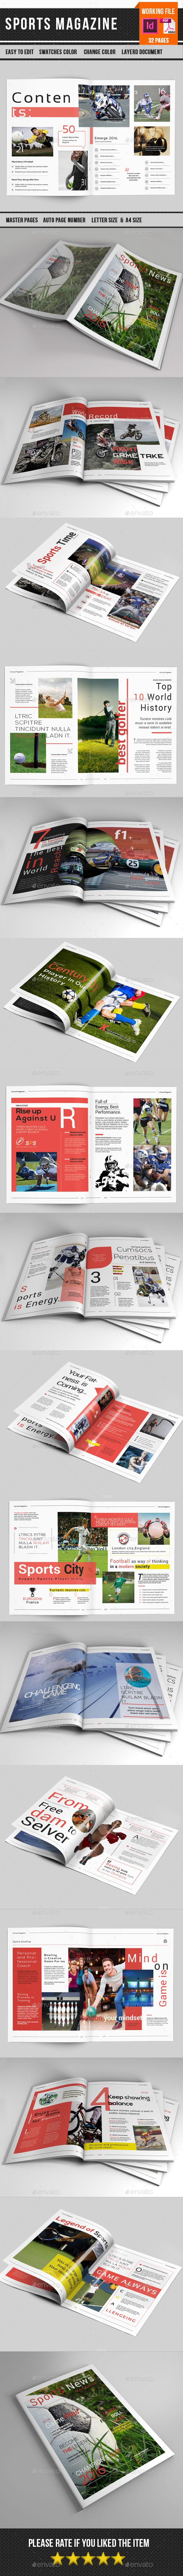 Sports Magazine Template-V17 - Magazines Print Templates Download here : https://graphicriver.net/item/sports-magazine-templatev17/16607436?s_rank=185&ref=Al-fatih